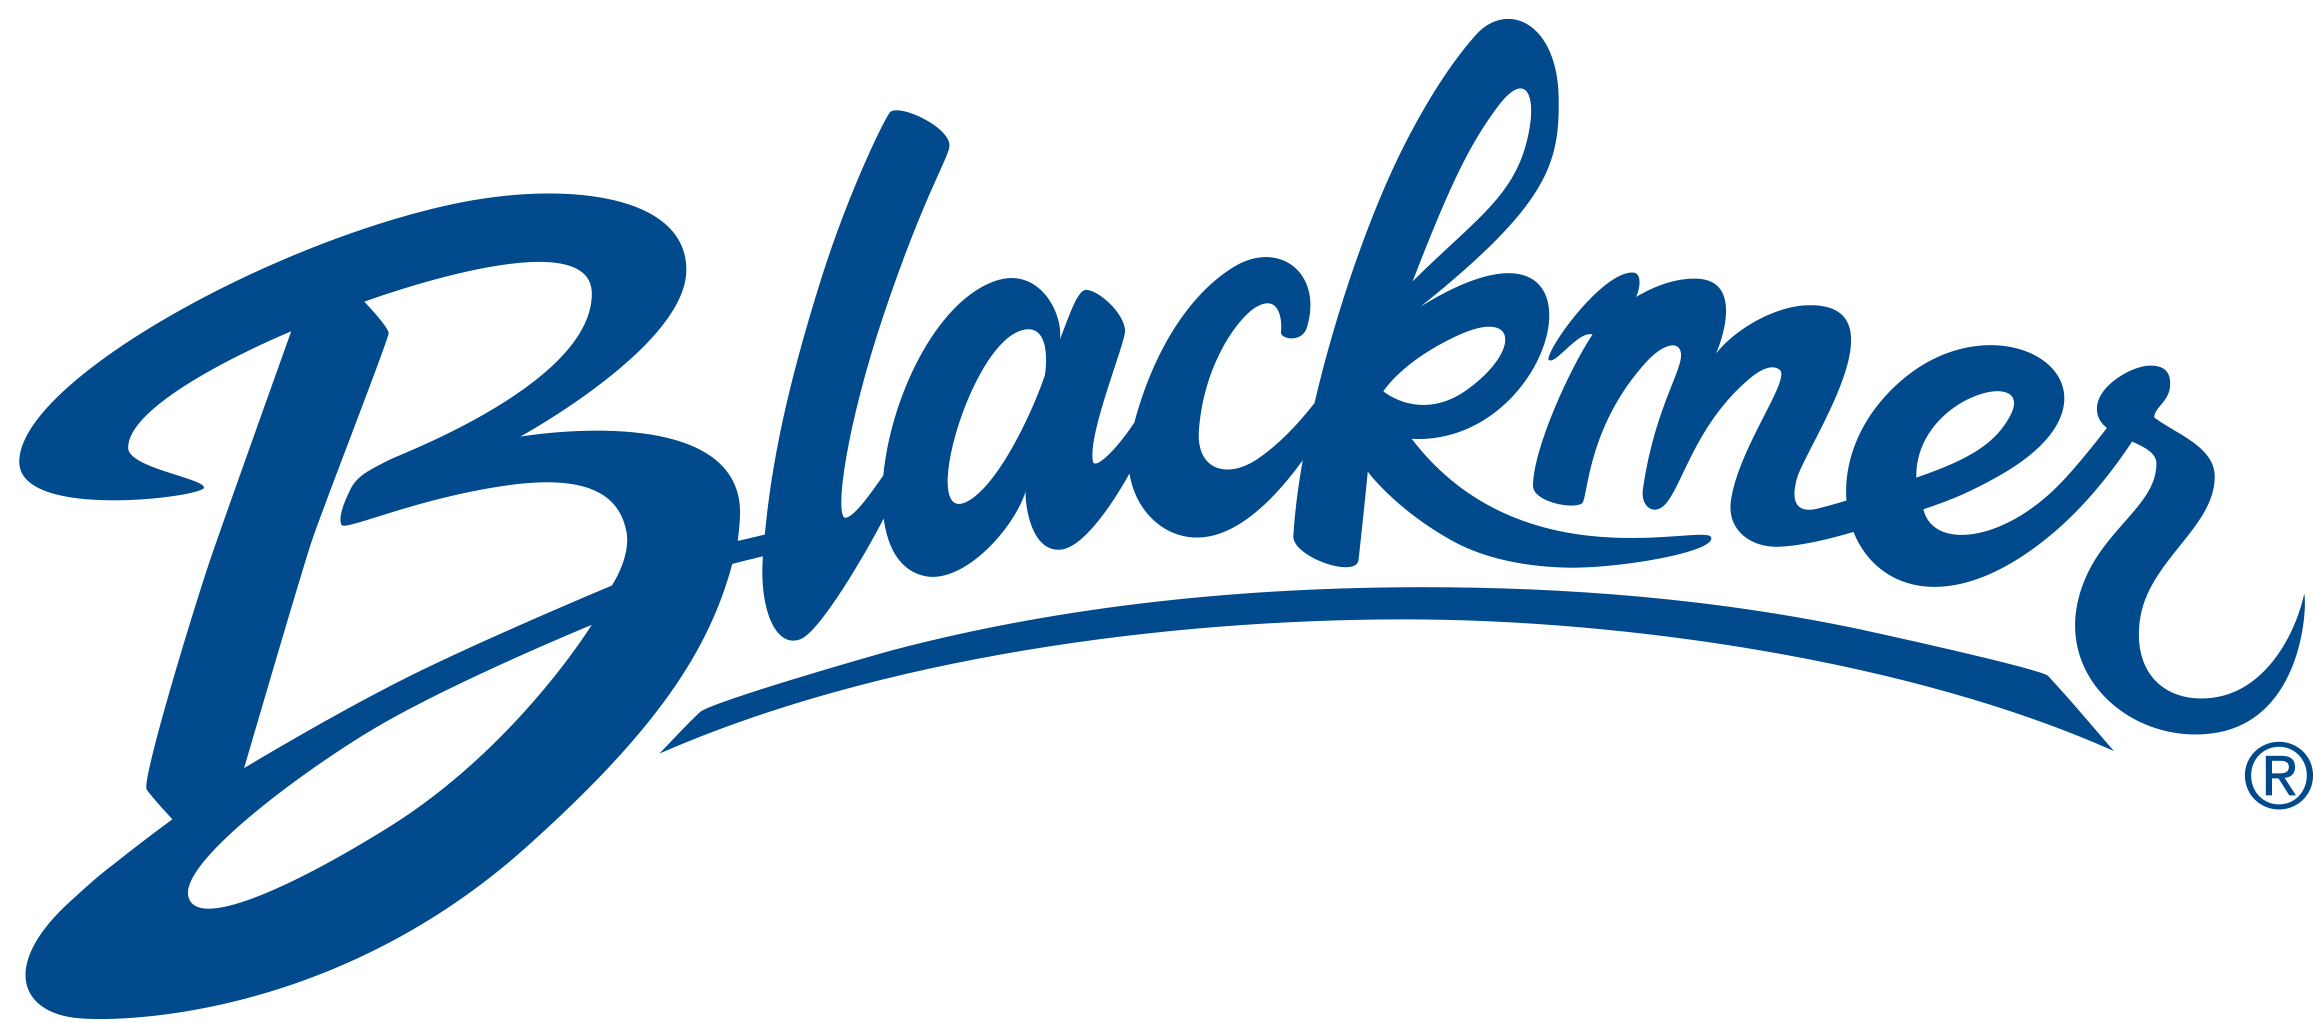 Blackmer pumps and compressors at NPGA 2018